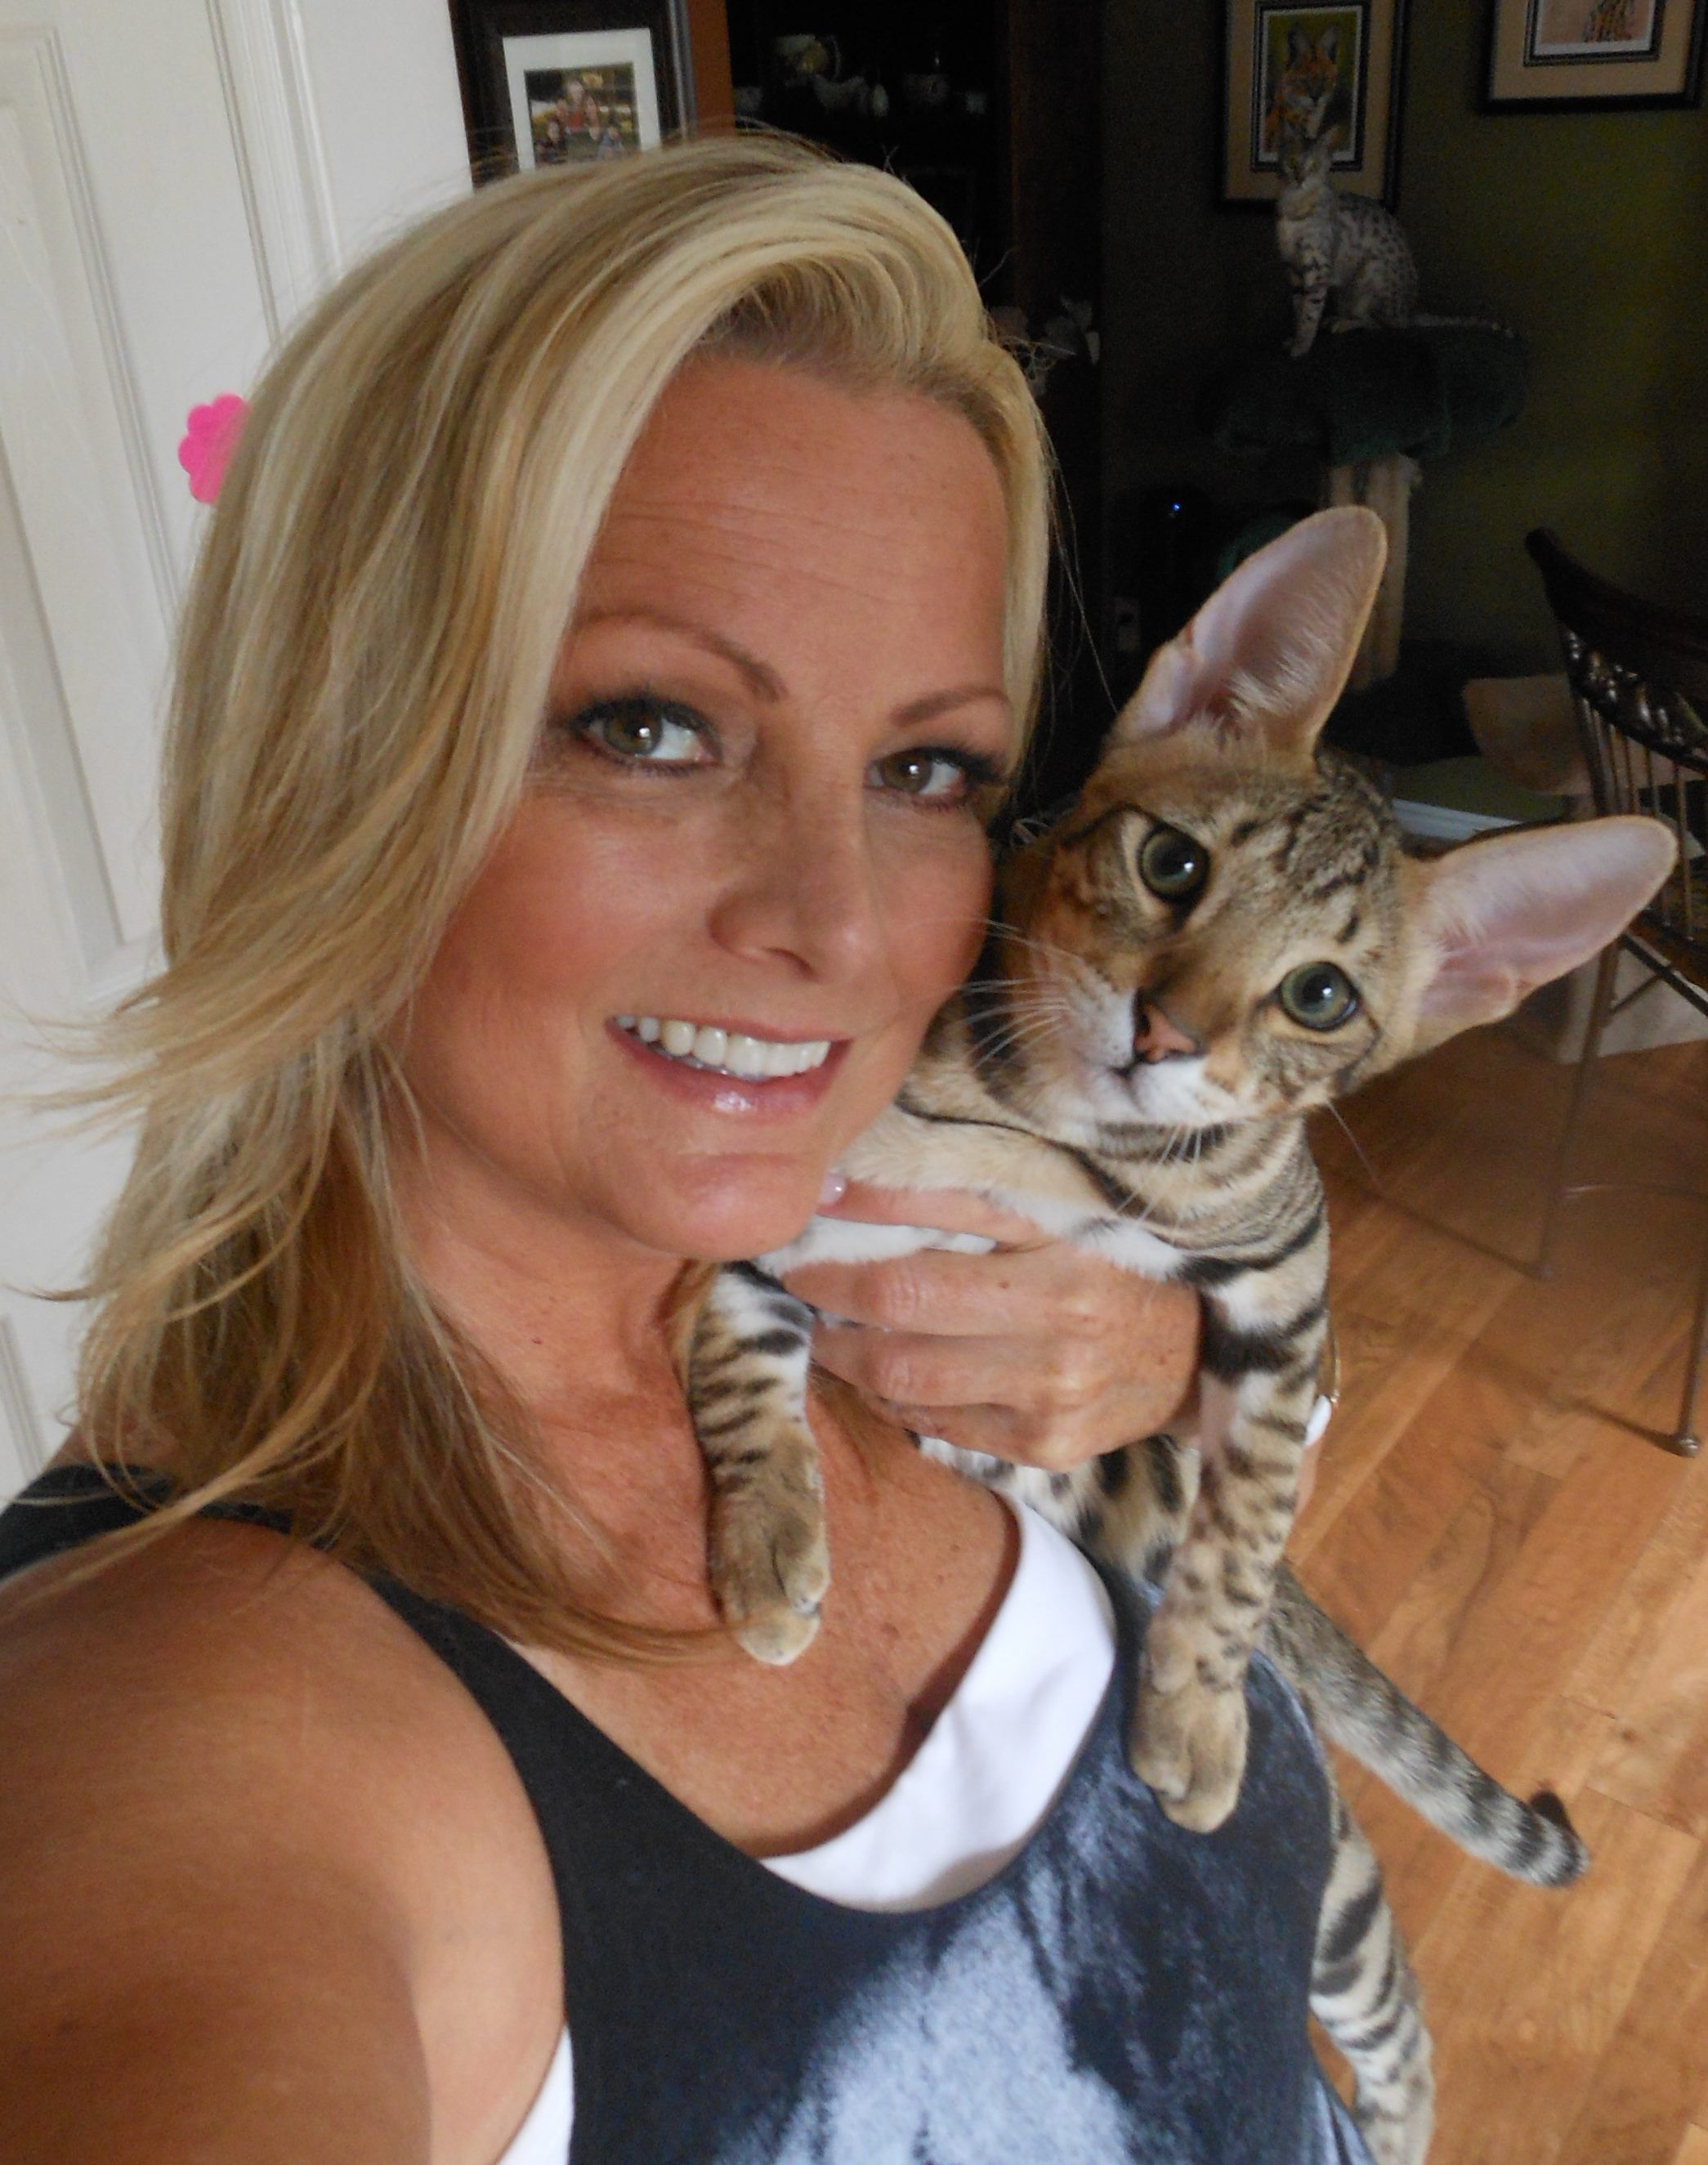 5 Month Old F3 Savannah Kitten Valentino And His Breeder Jannel Contact Me For Info On Owning A Beautiful Savanna Savannah Kitten Savannah Chat 5 Month Olds